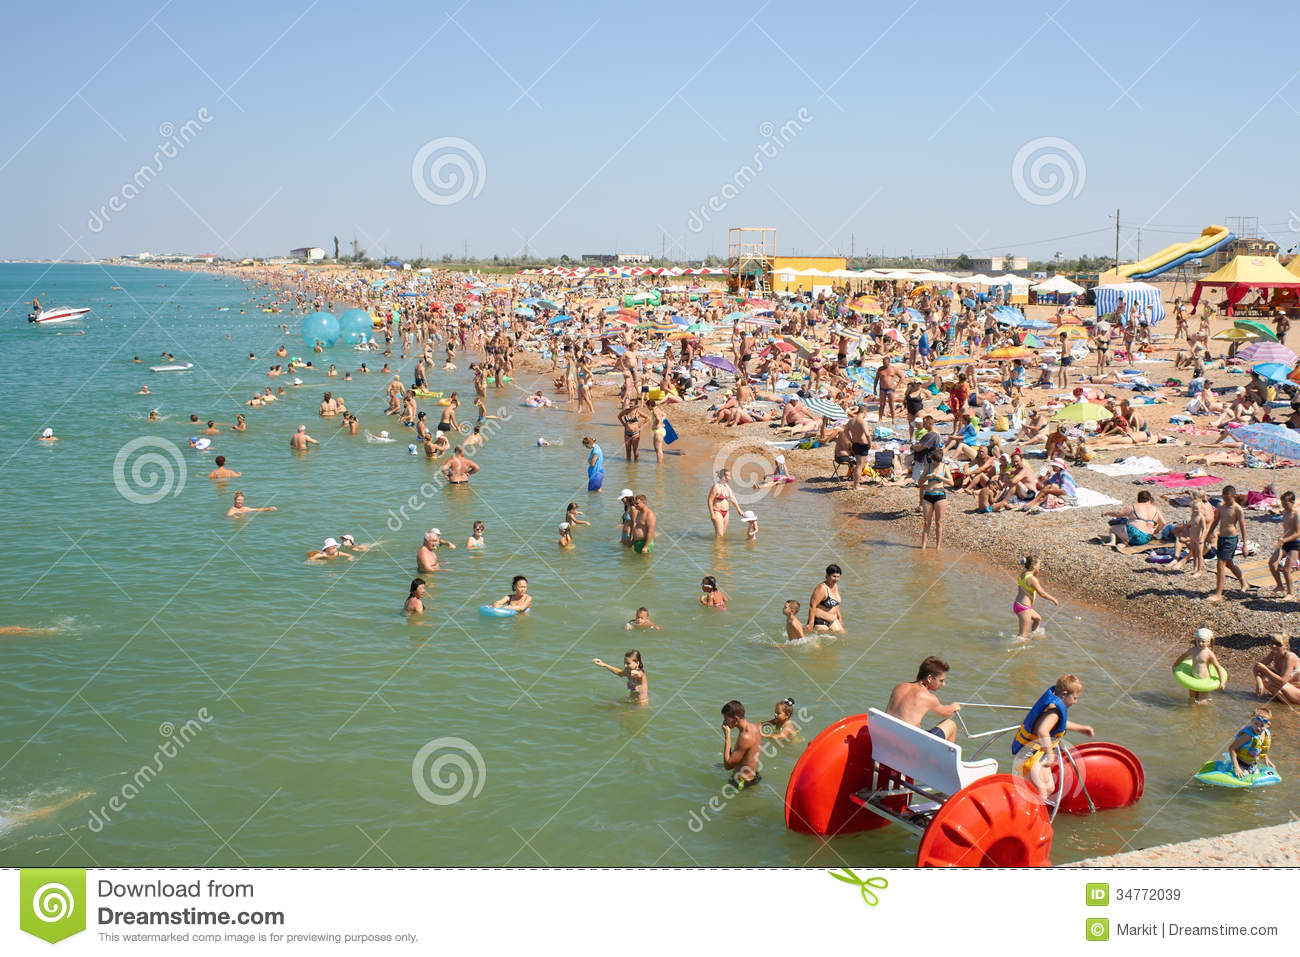 Seascape Beach Resort >> Many People Relaxing On The Beach Editorial Stock Image - Image: 34772039